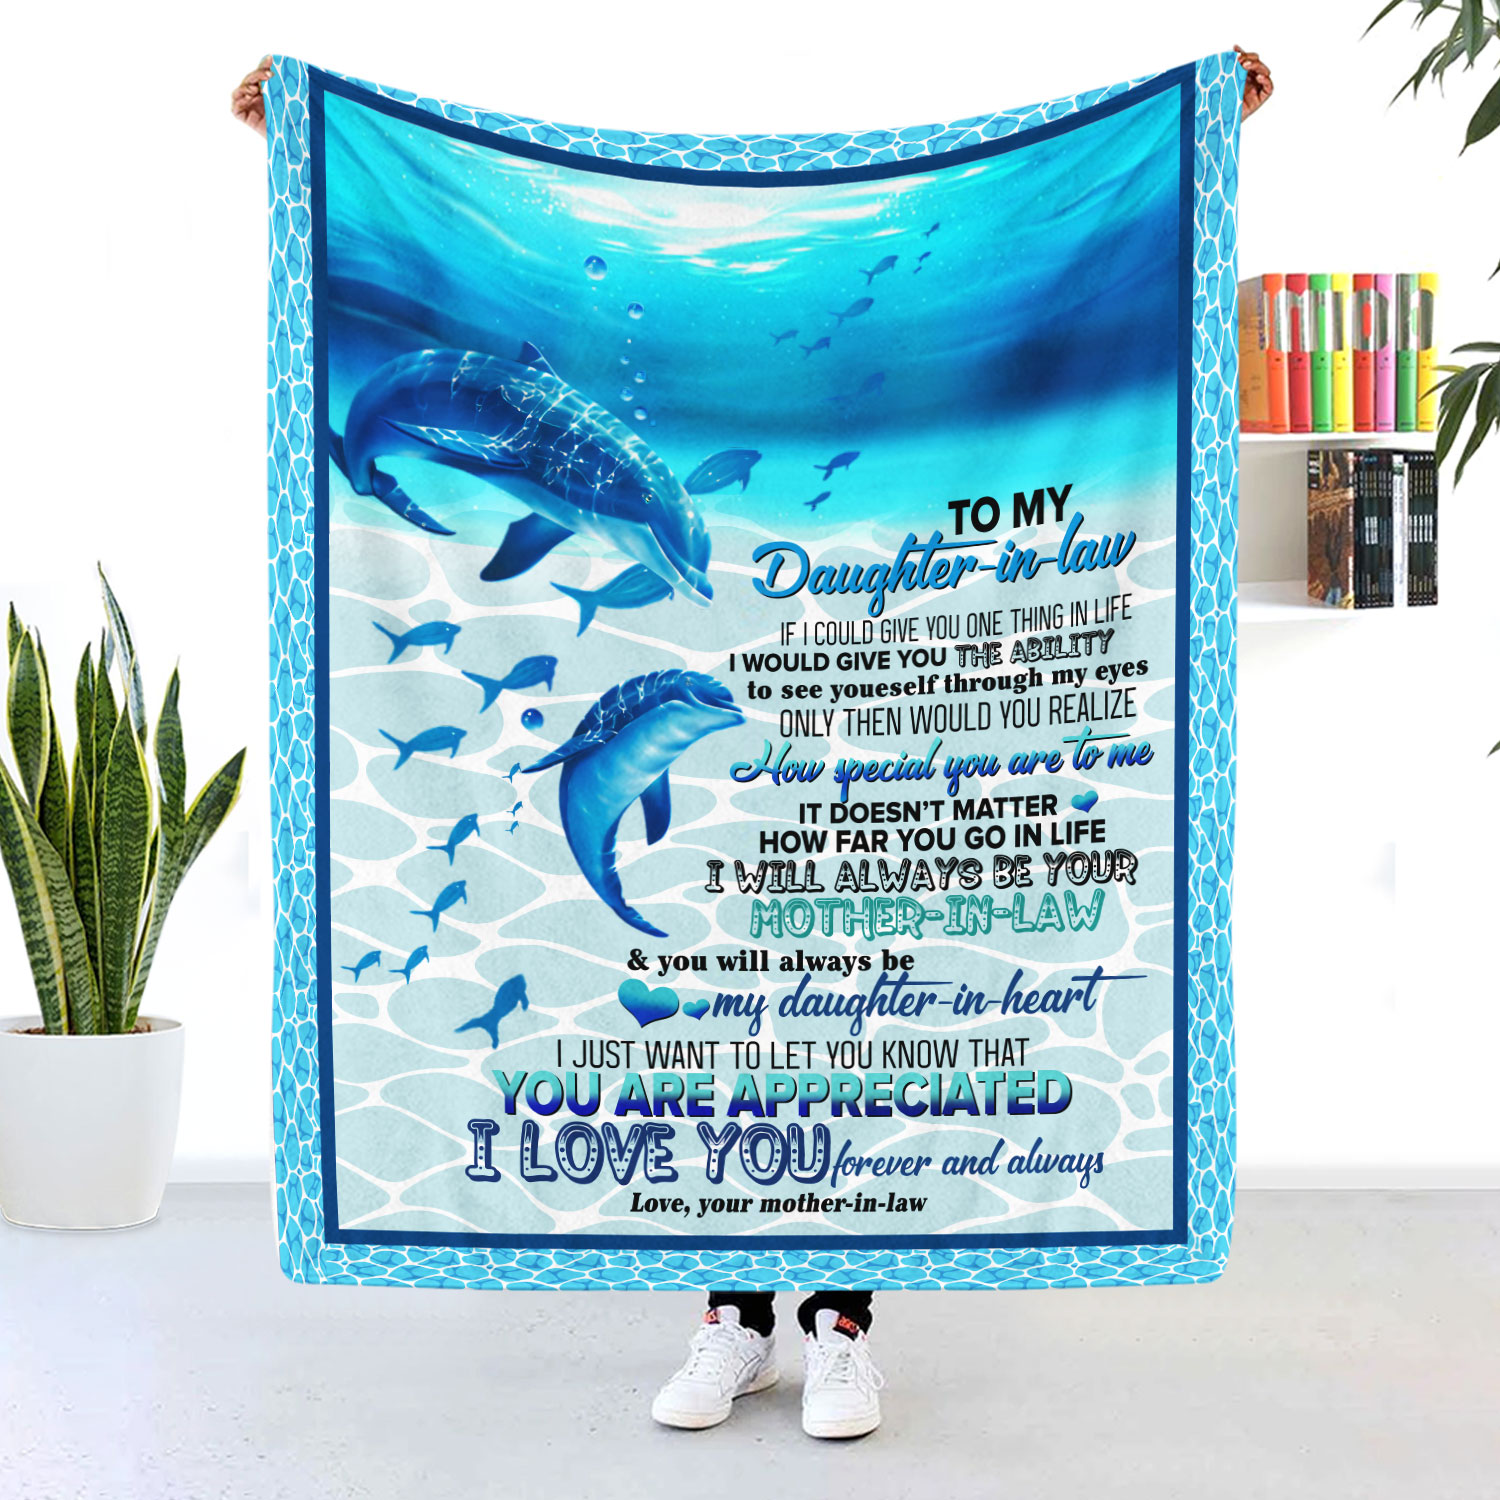 To My Daughter In Law Blanket I Love You Your Mother In Law